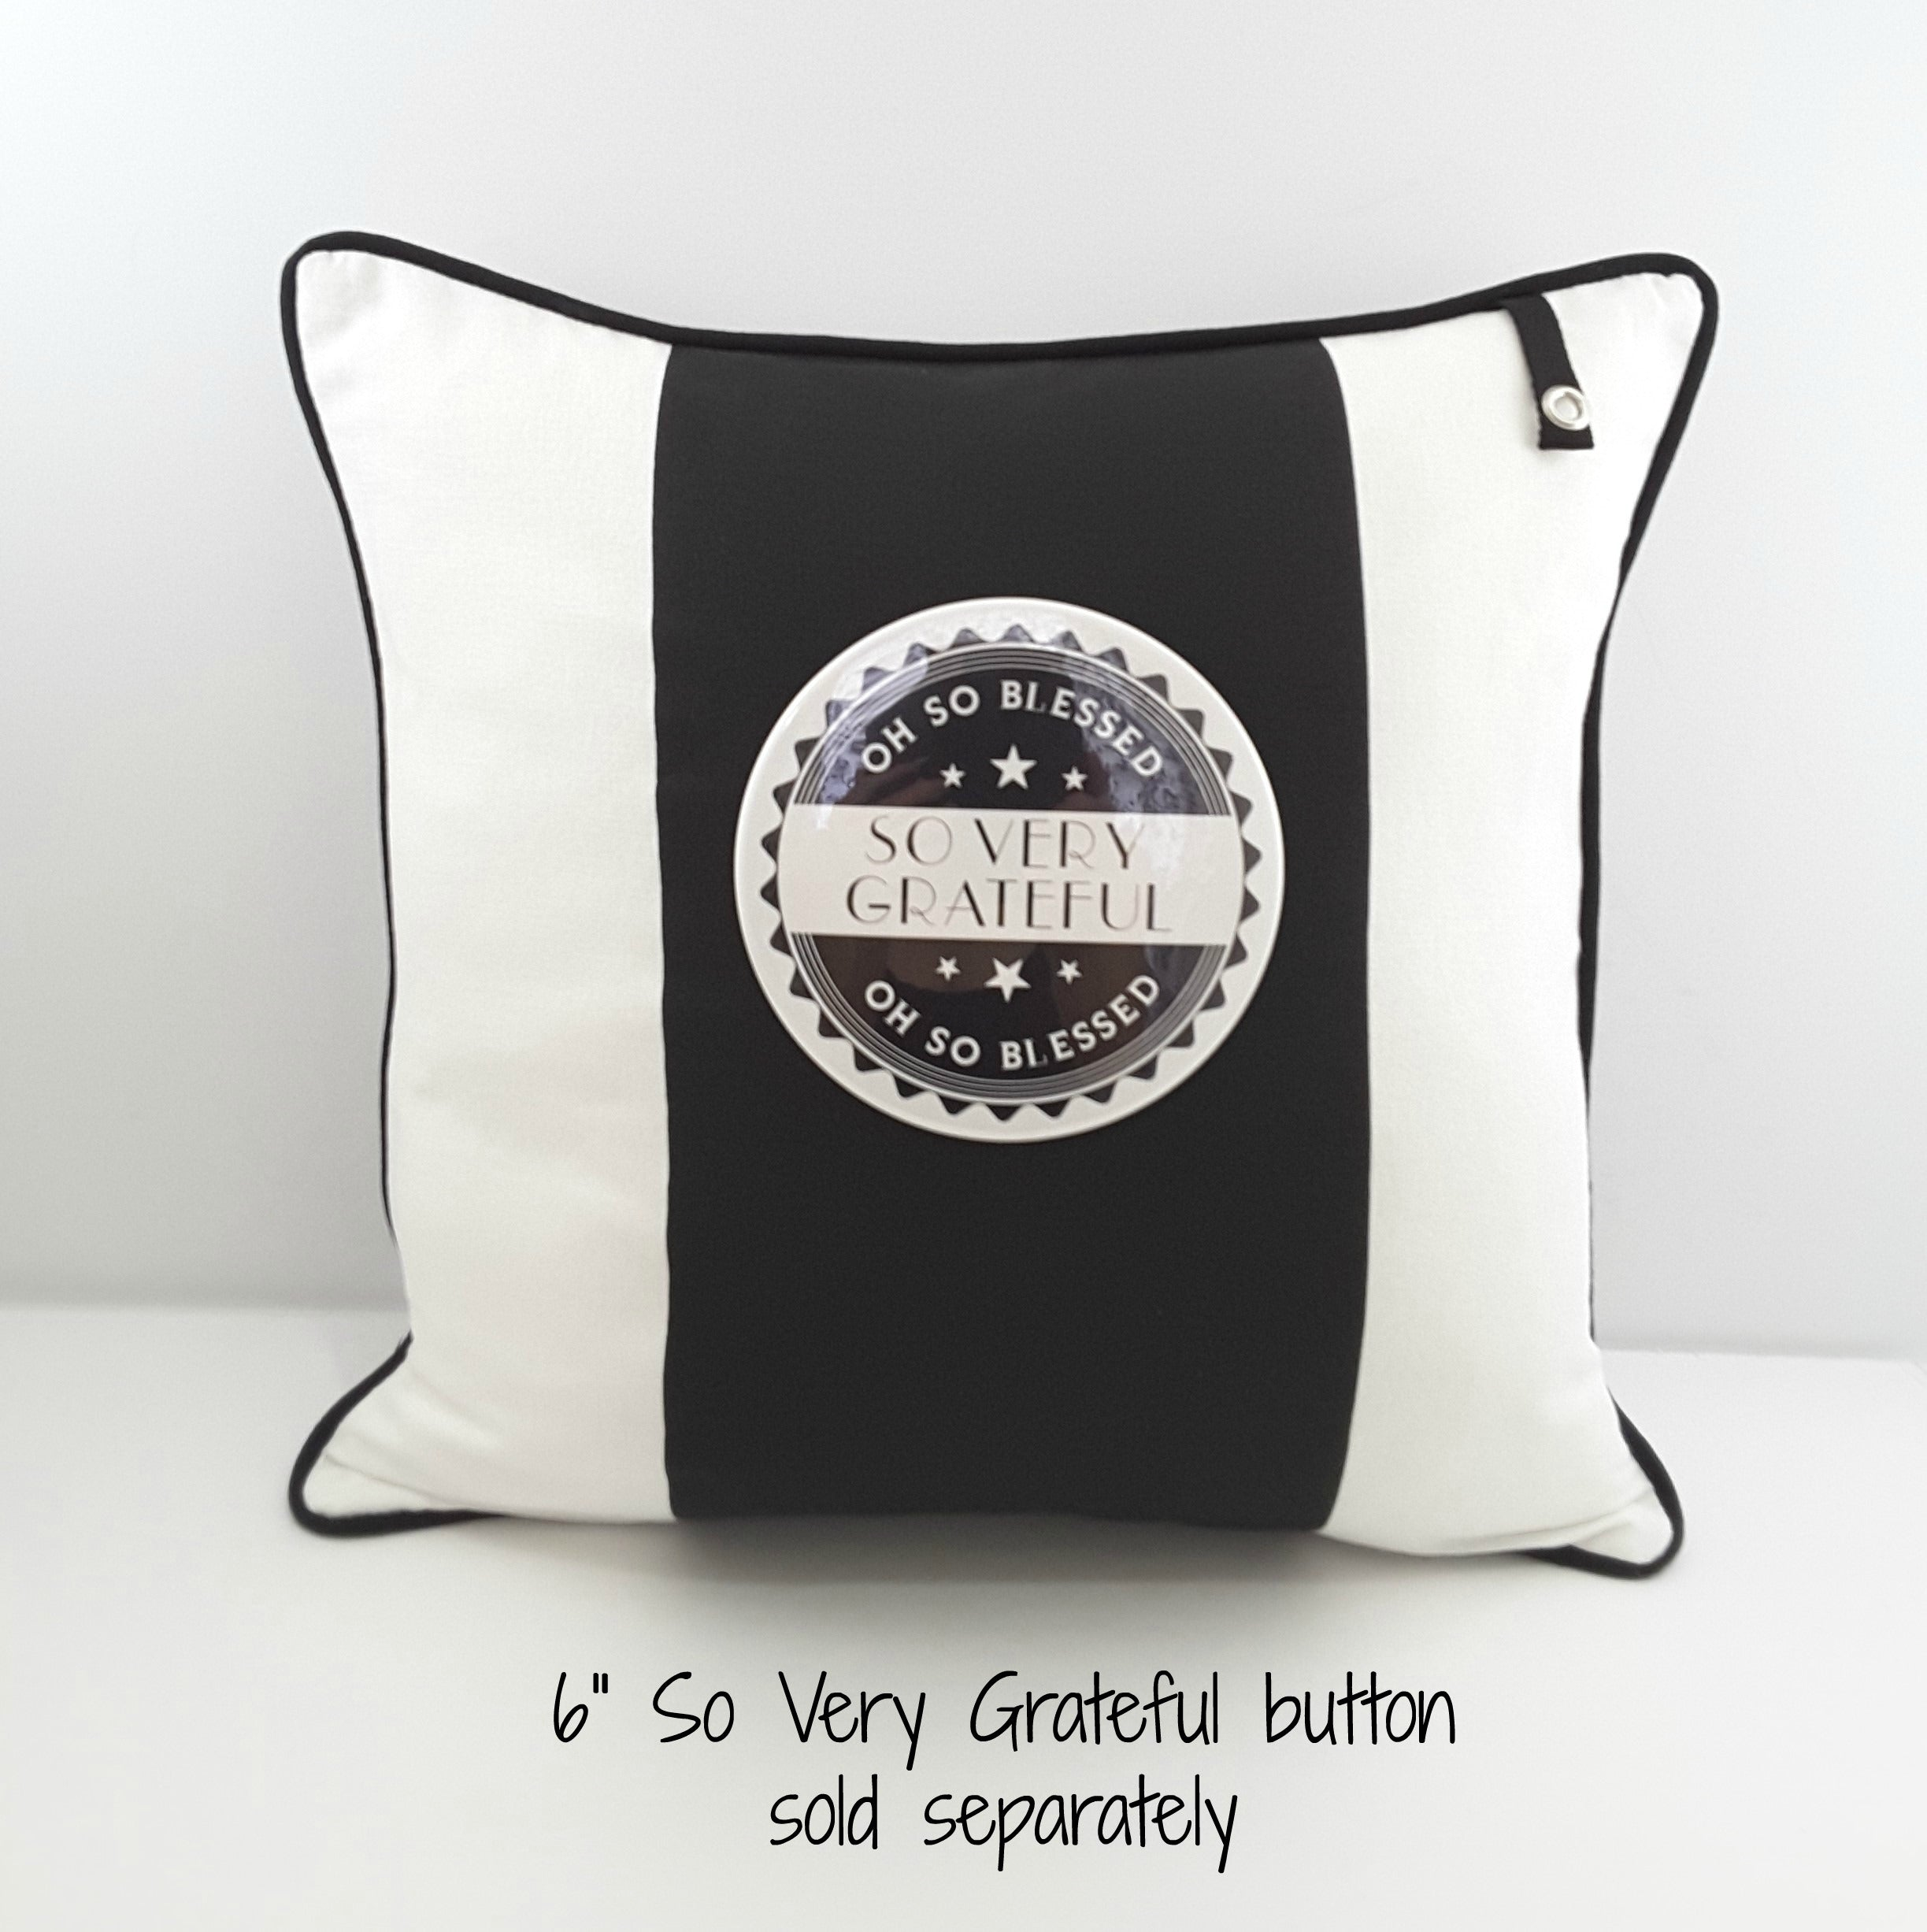 "6"" SO VERY GRATEFUL BUTTON ON 3 STRIPE PILLOW"